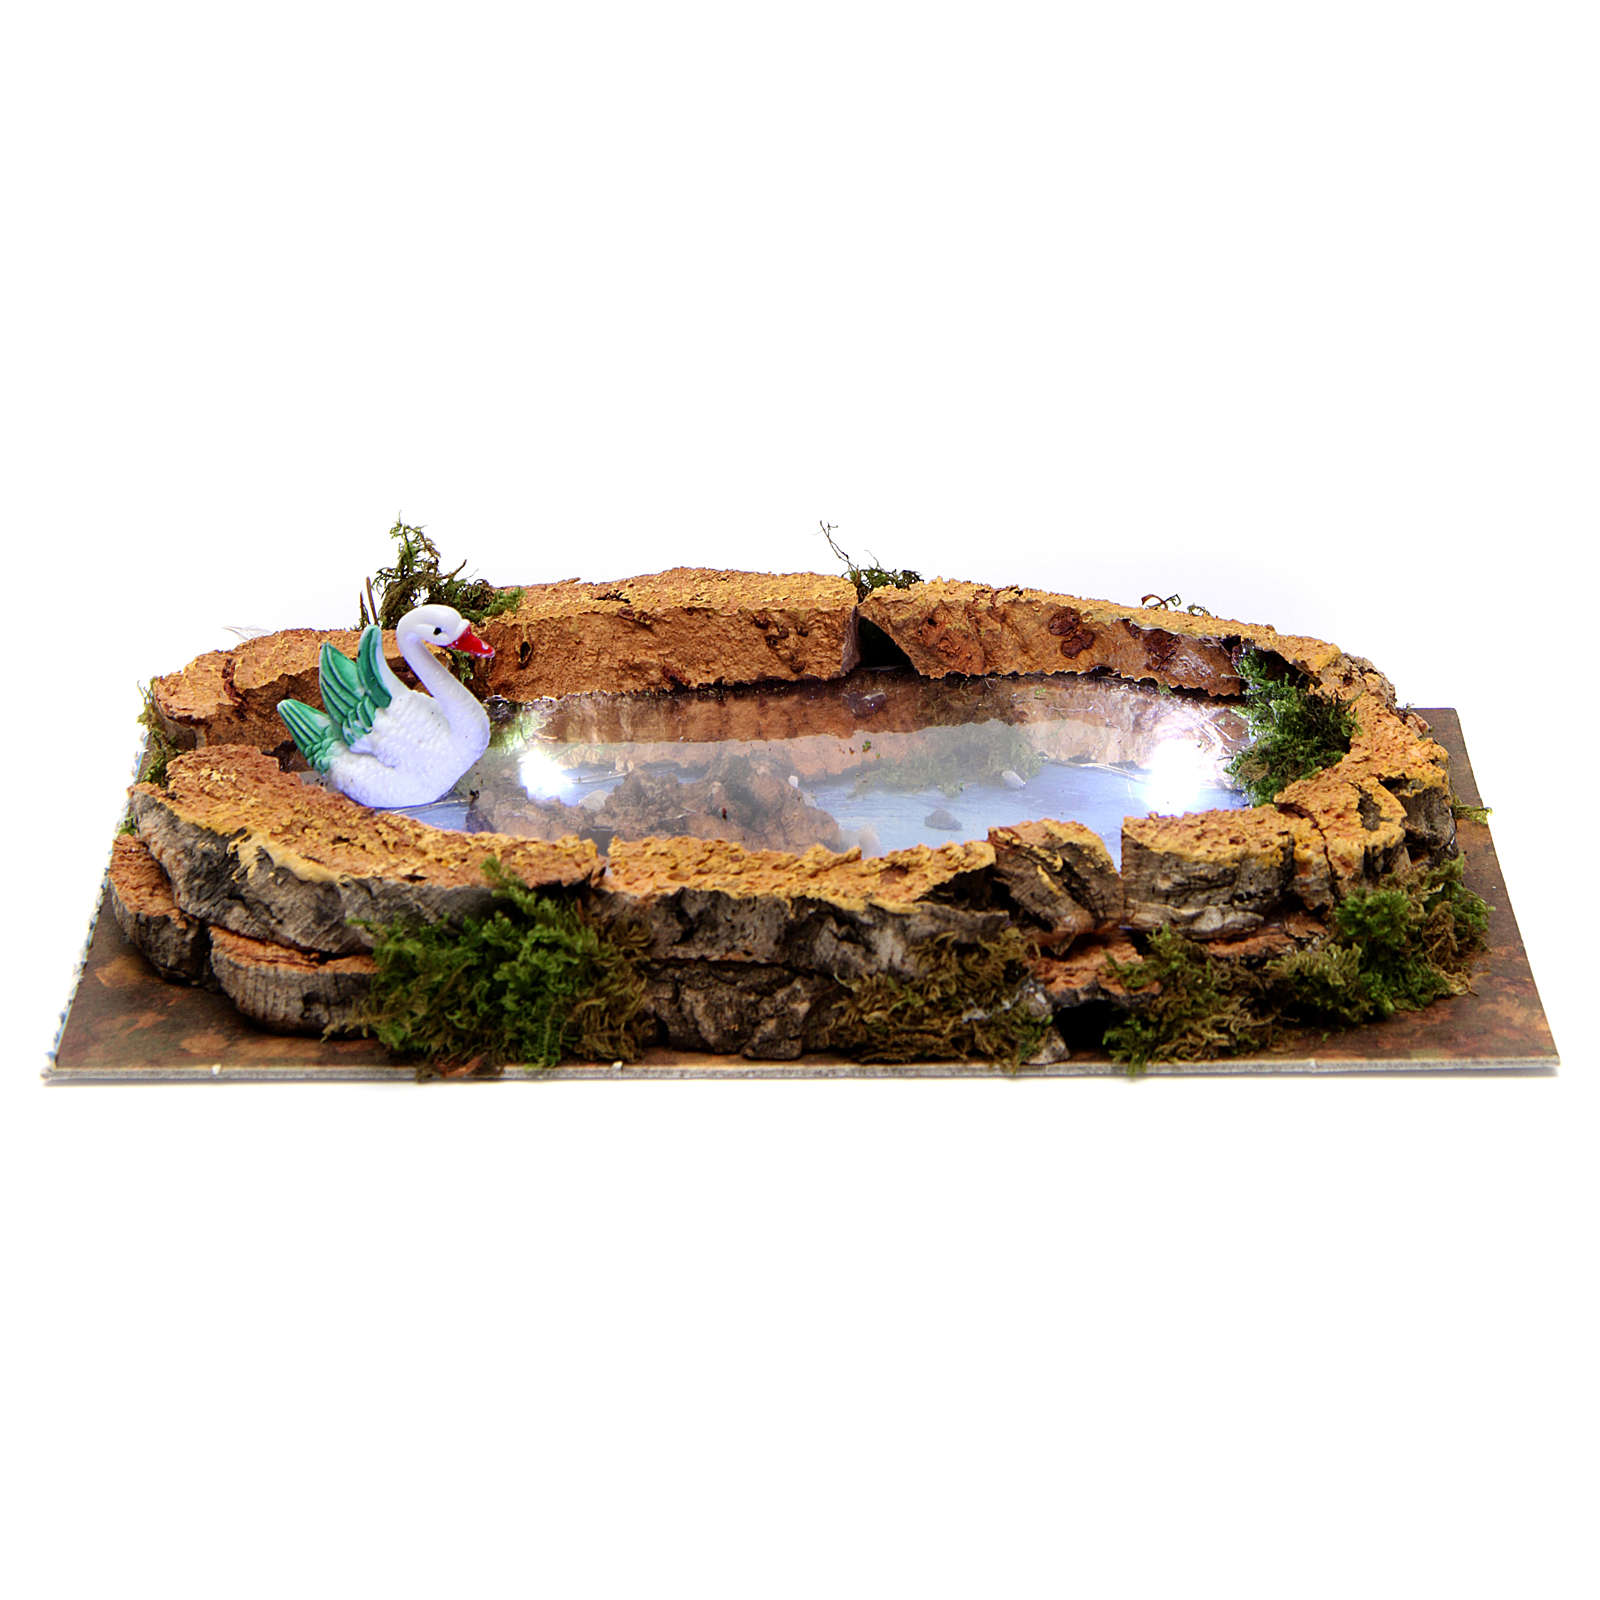 Lake with swan and lights for Nativity Scene 5x20x10 cm 4